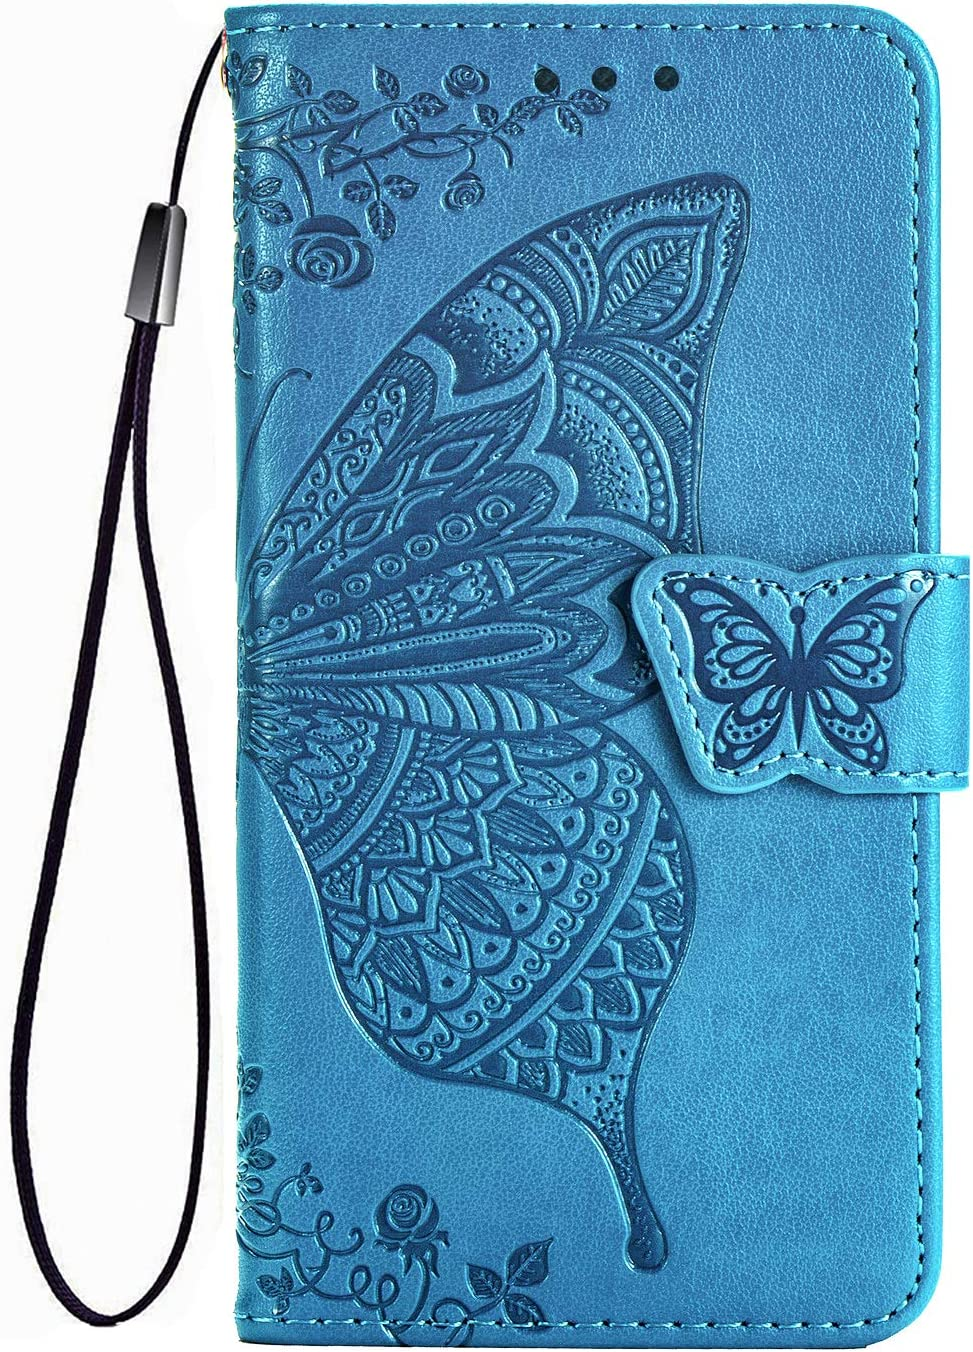 PU//TPU Flip Leather Wallet Cover Premium 3D Butterfly Phone Shell with Cash /& Card Slots Blue TANYO Case for Motorola G8 Power Lite